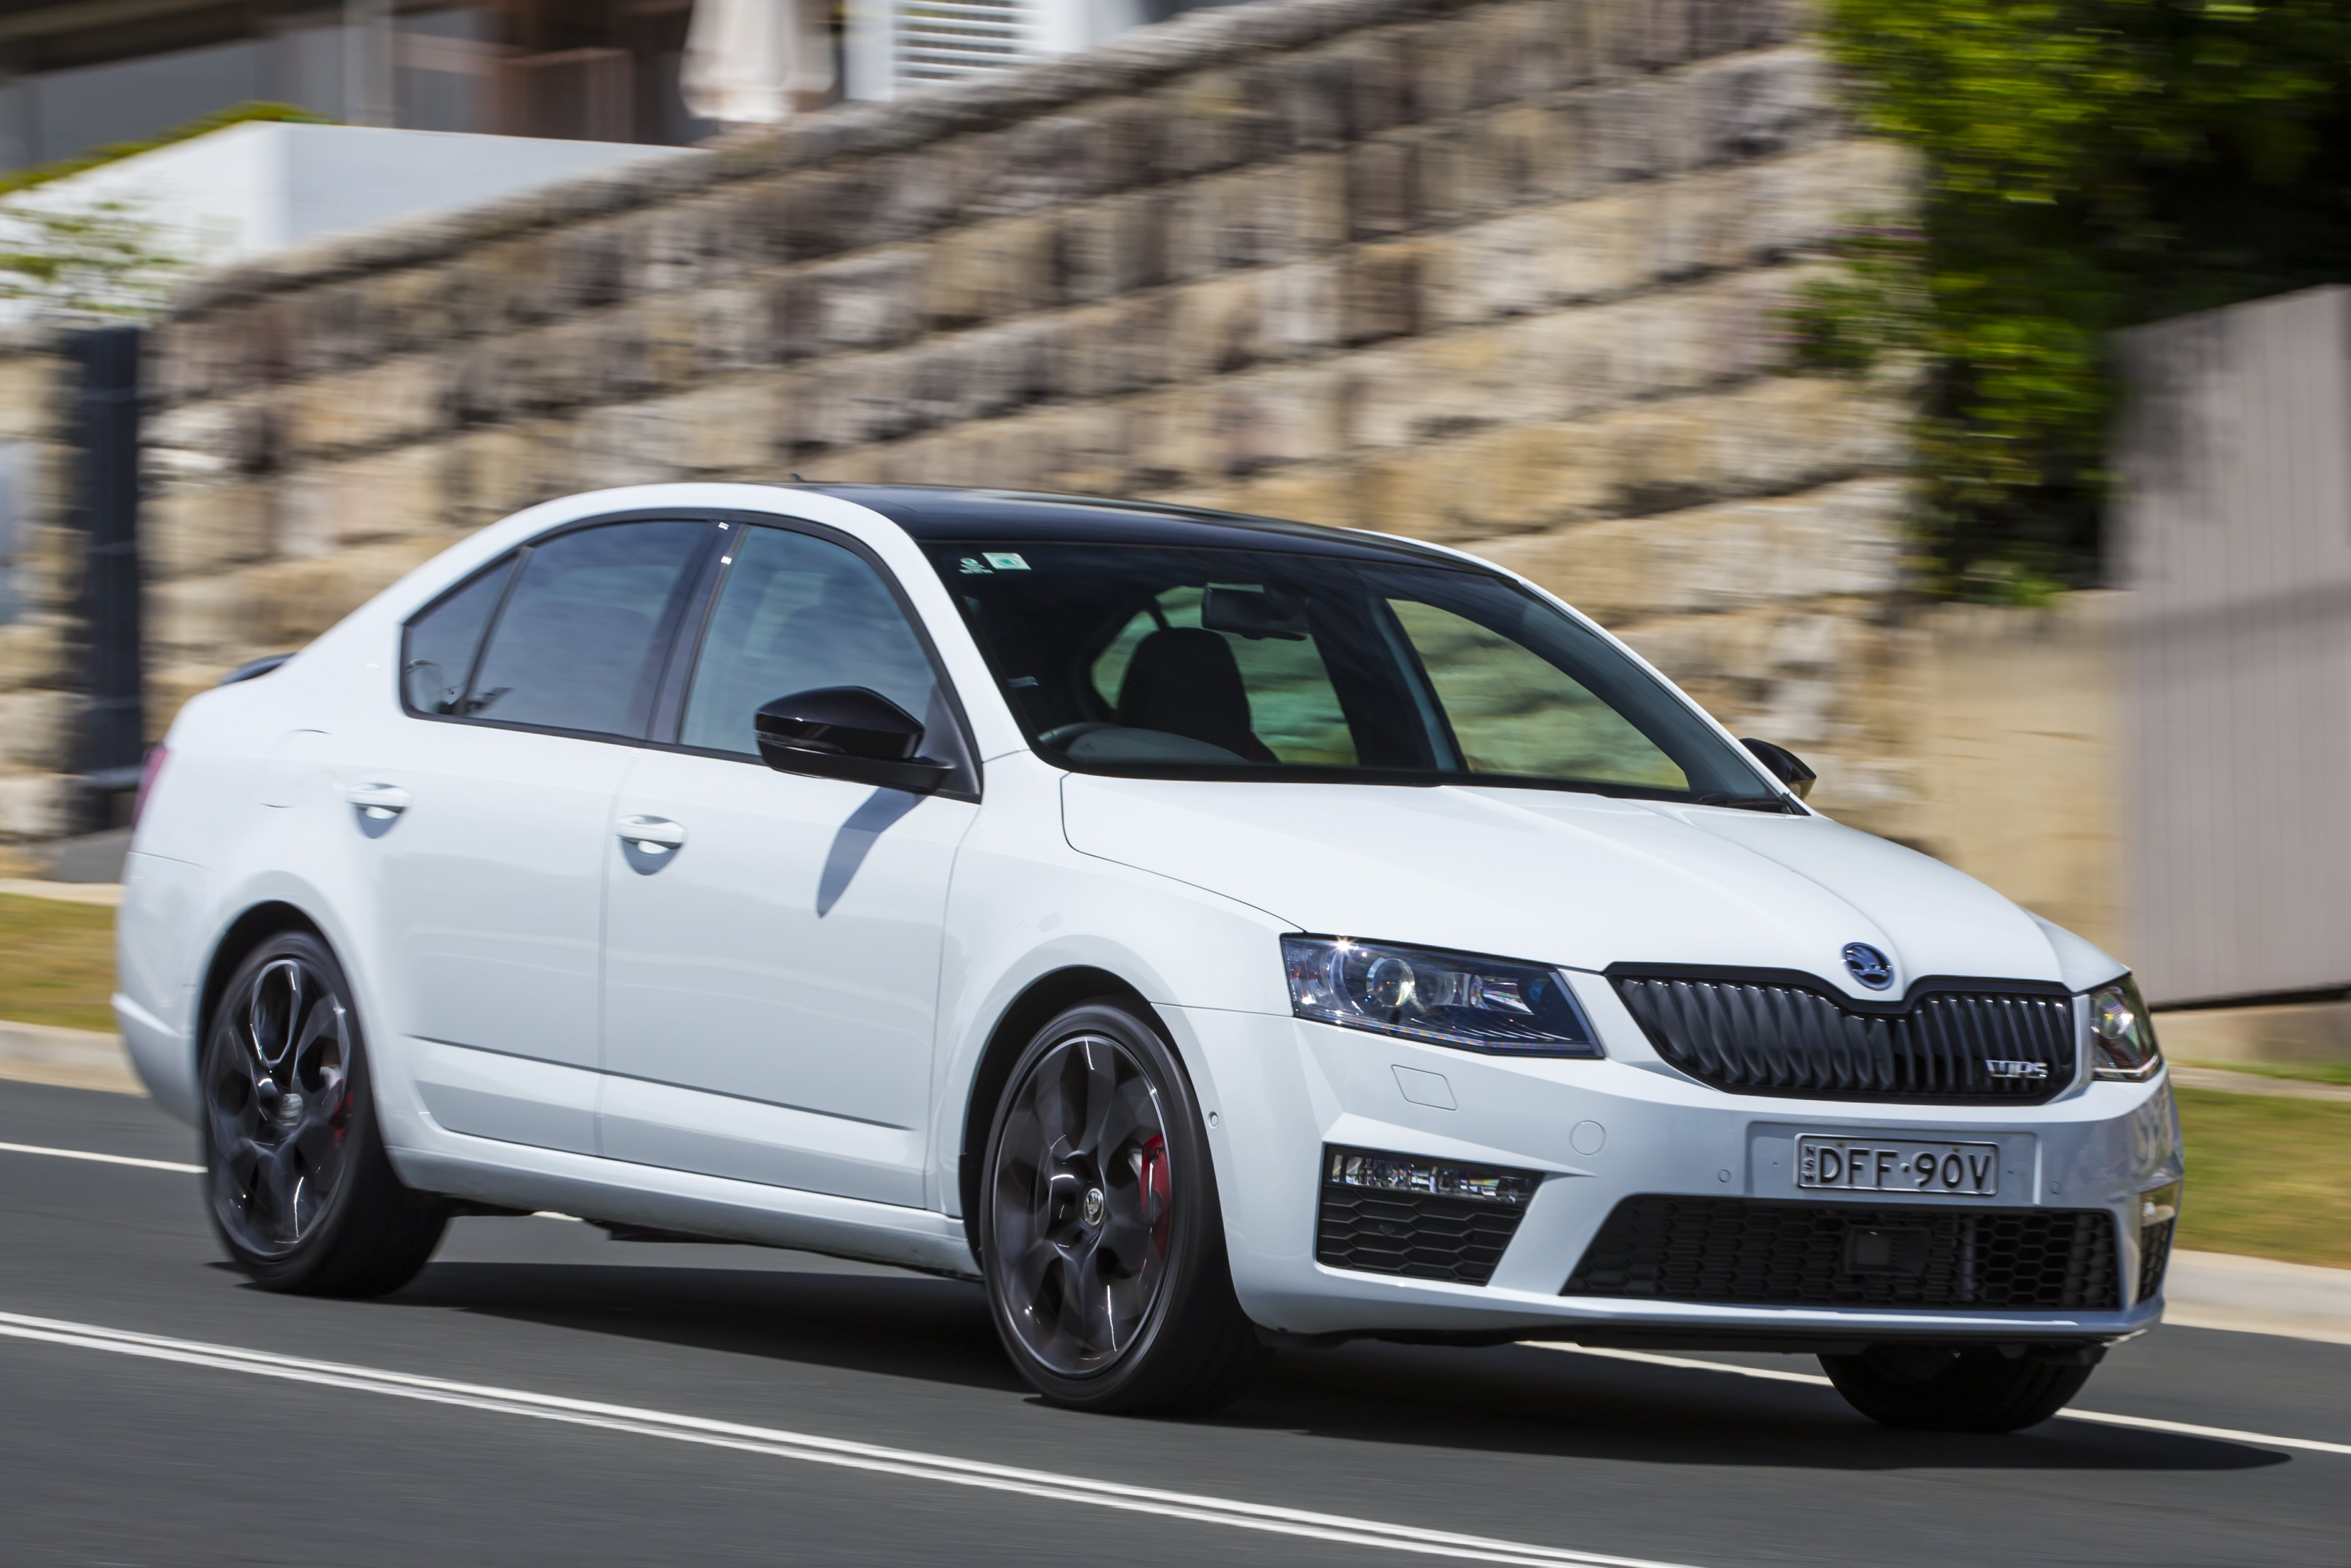 Skoda Octavia A7 RS mod model